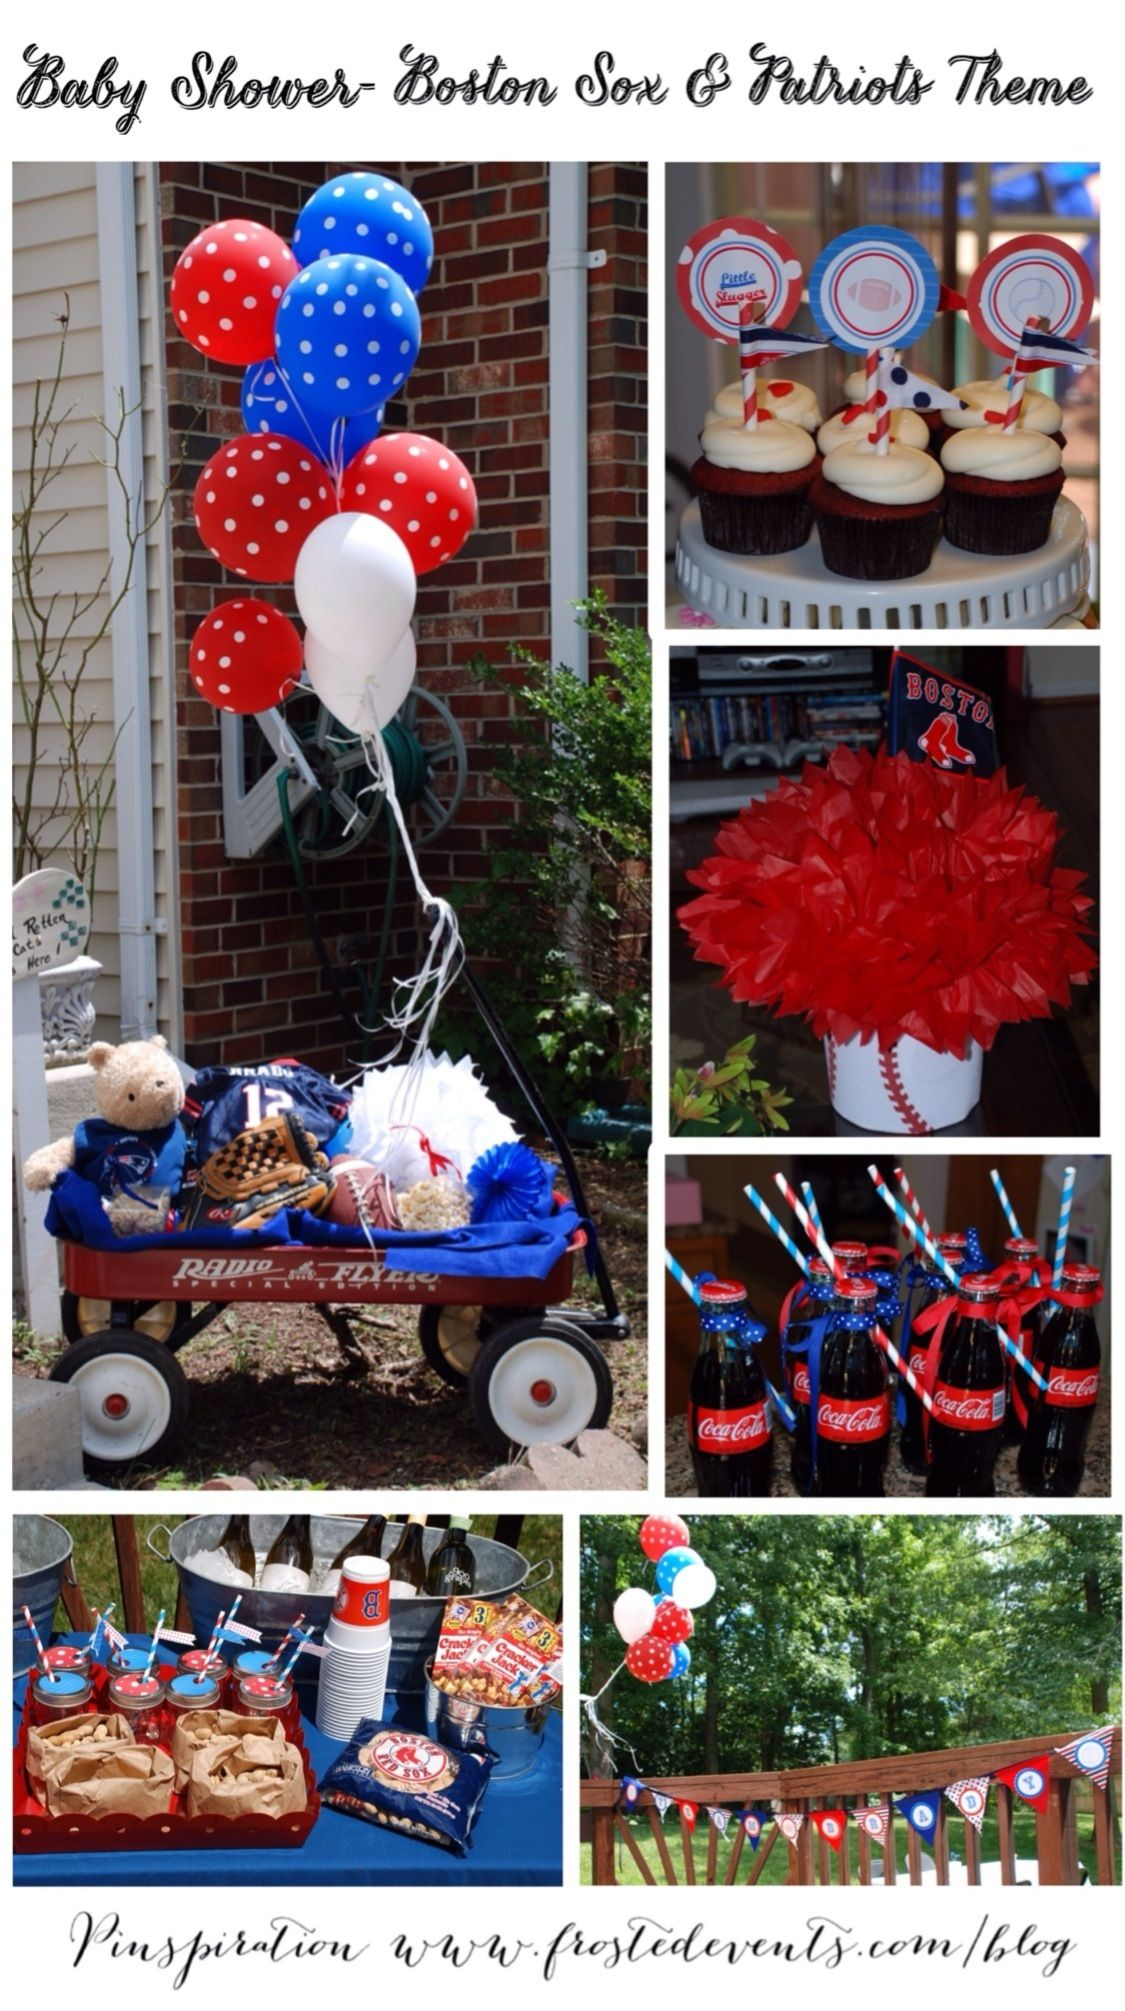 Baby Shower- Red Sox & Patriots- Boston Sports Teams Theme